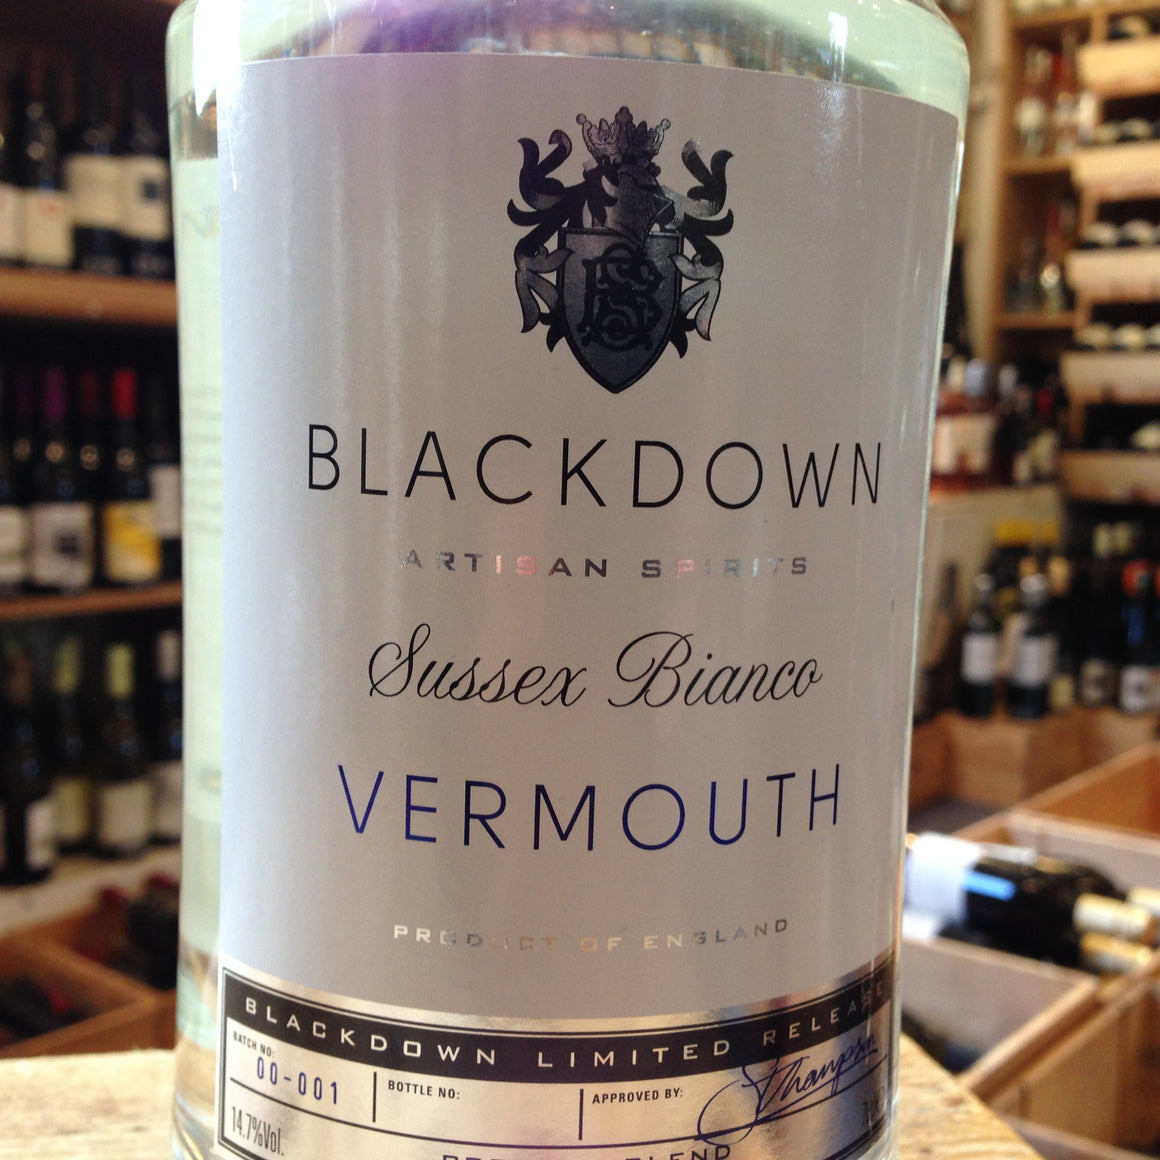 Blackdown Sussex Bianco Vermouth - Butlers Wine Cellar Brighton